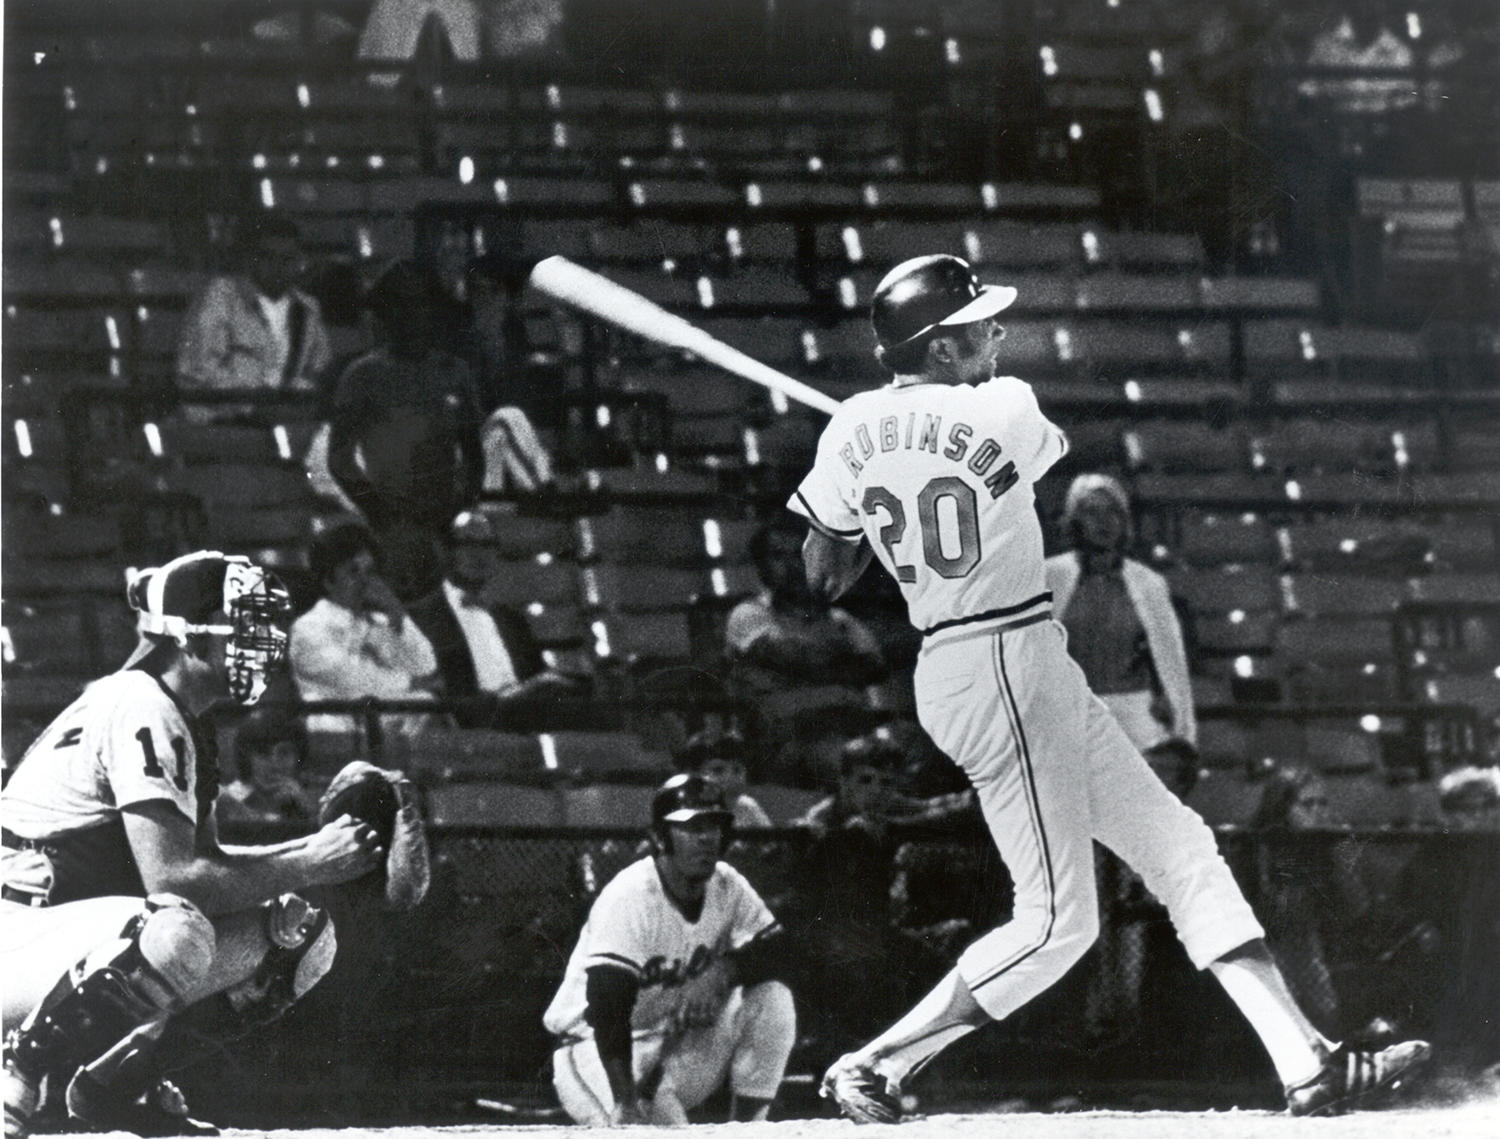 Although Baltimore's Memorial Stadium was mostly empty at the end of a long day that featured a doubleheader, Frank Robinson made history on Sept. 13, 1971 by hitting his 500th home run. (National Baseball Hall of Fame and Museum)